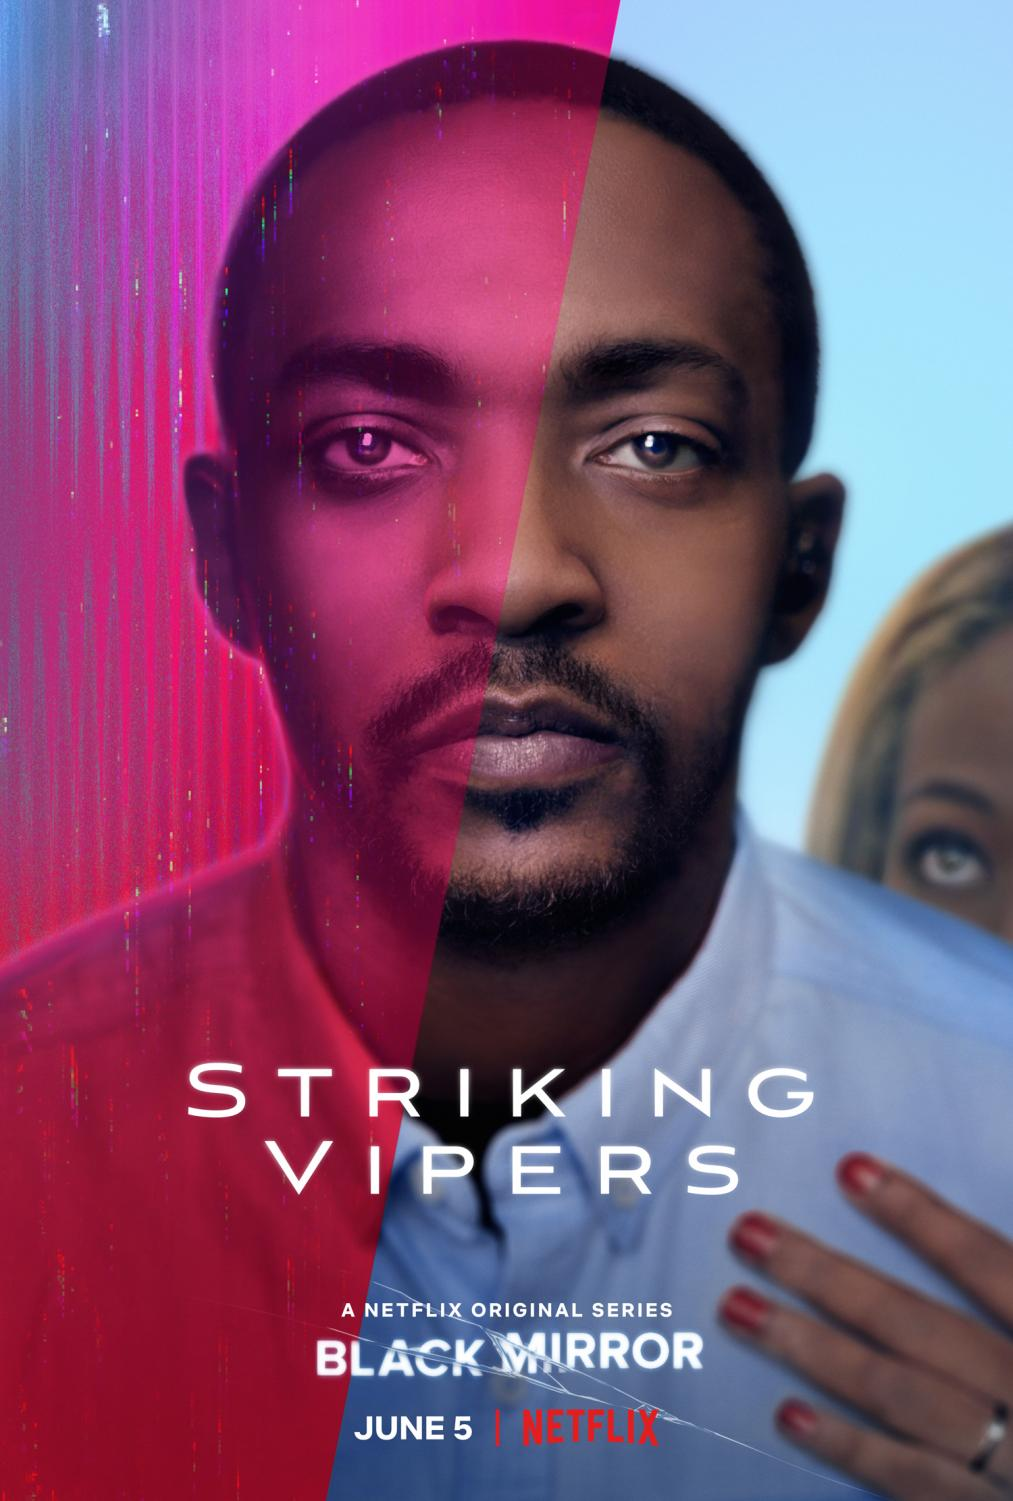 Striking Vipers is Season five's first episode of Black Mirror